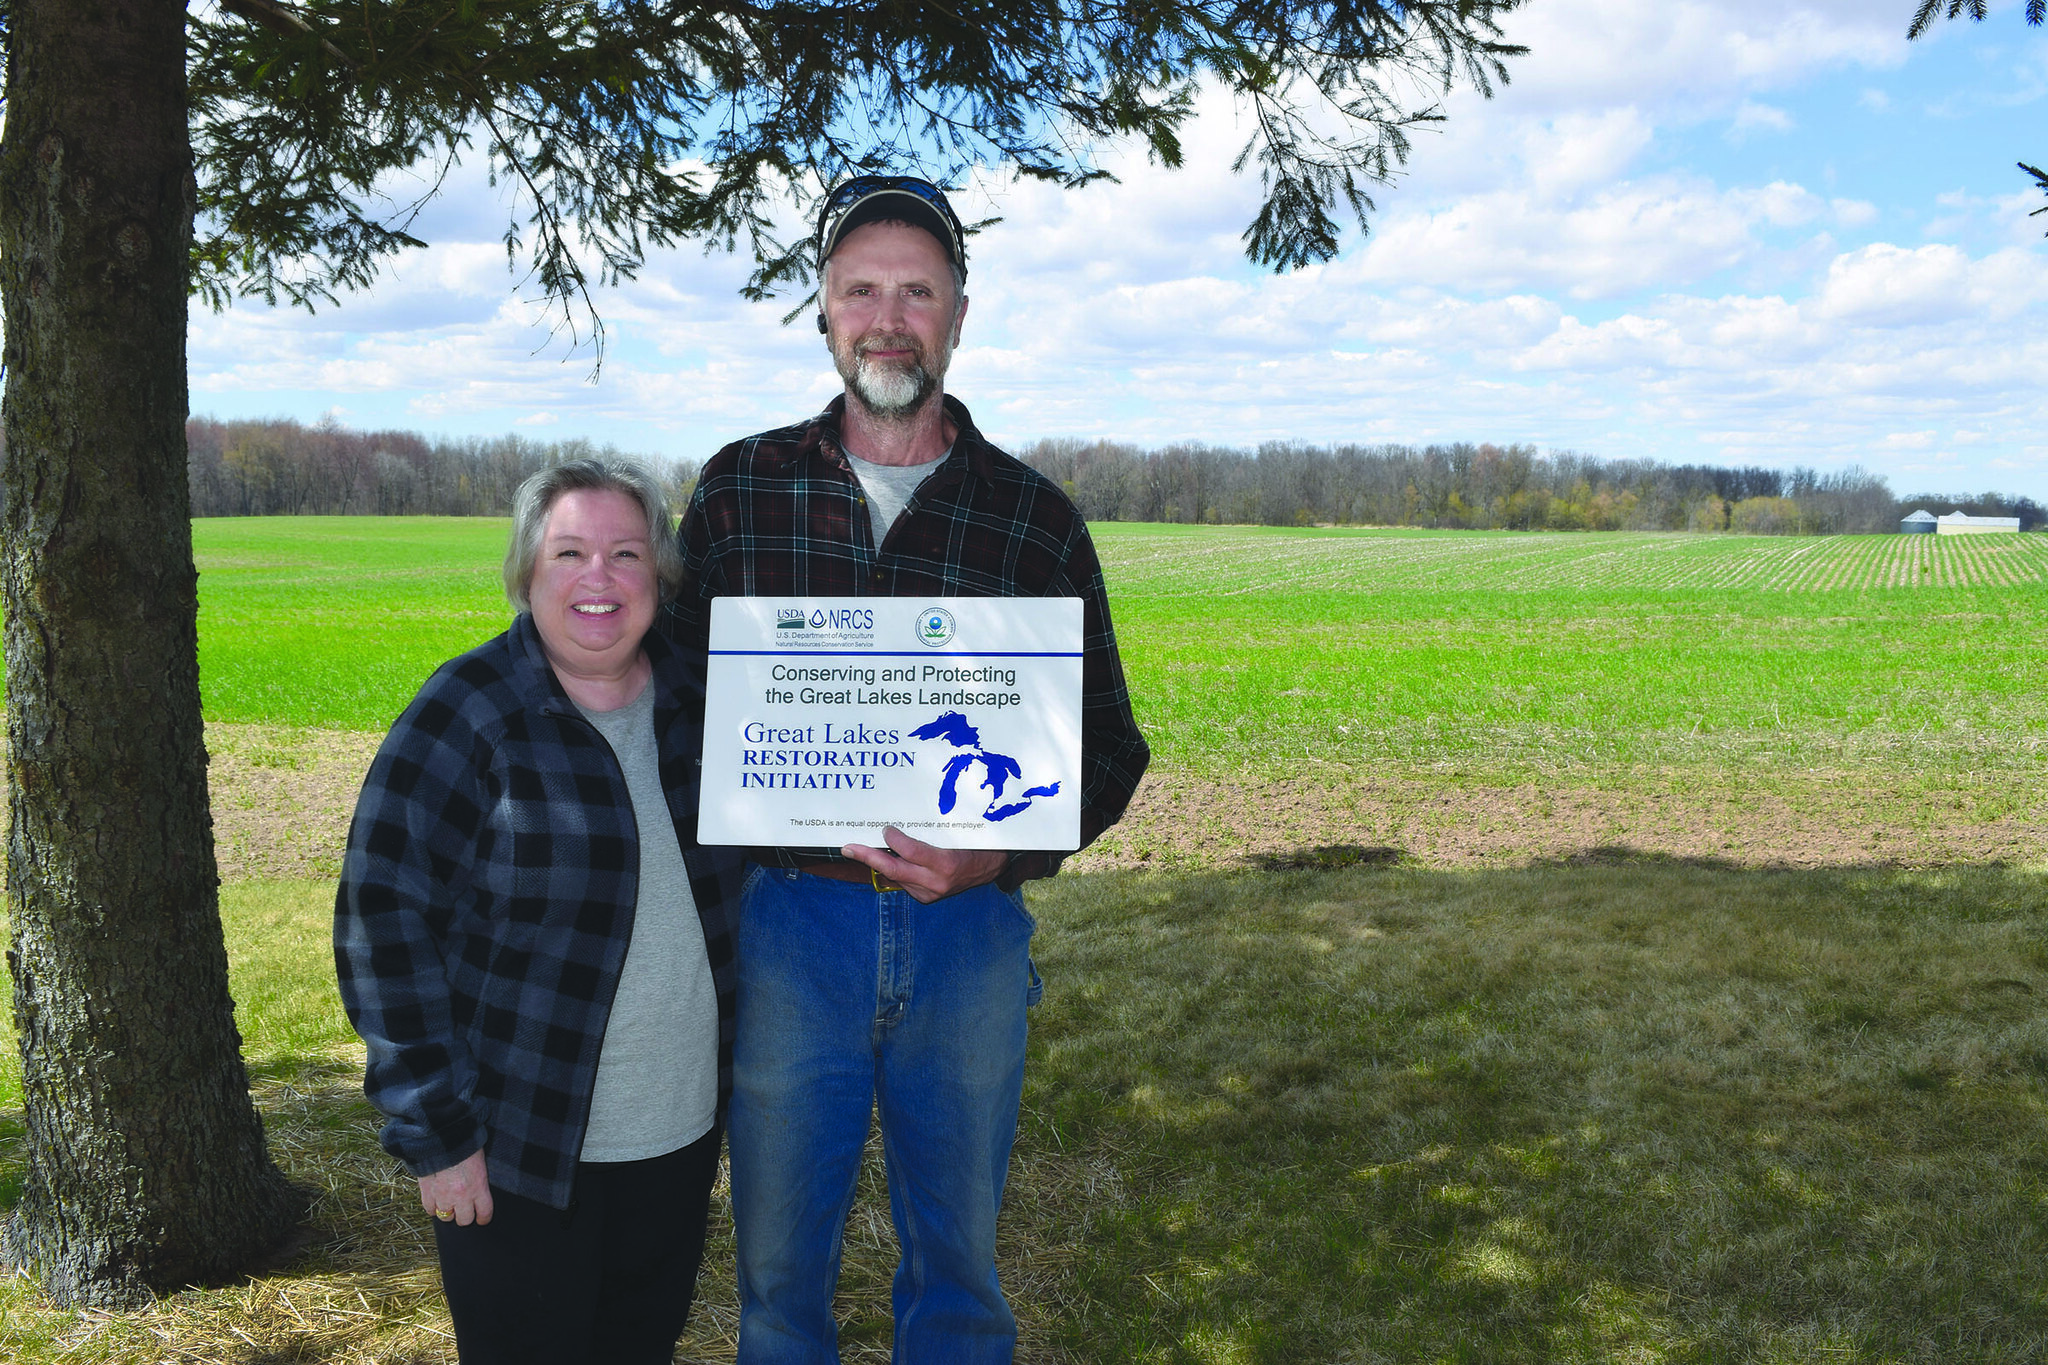 Greg and Karon Nettekoven manage an 800-acre vegetable farm in the Fox River watershed in Wisconsin where they use a variety of conservation practices. Photo: Tivoli Gough.